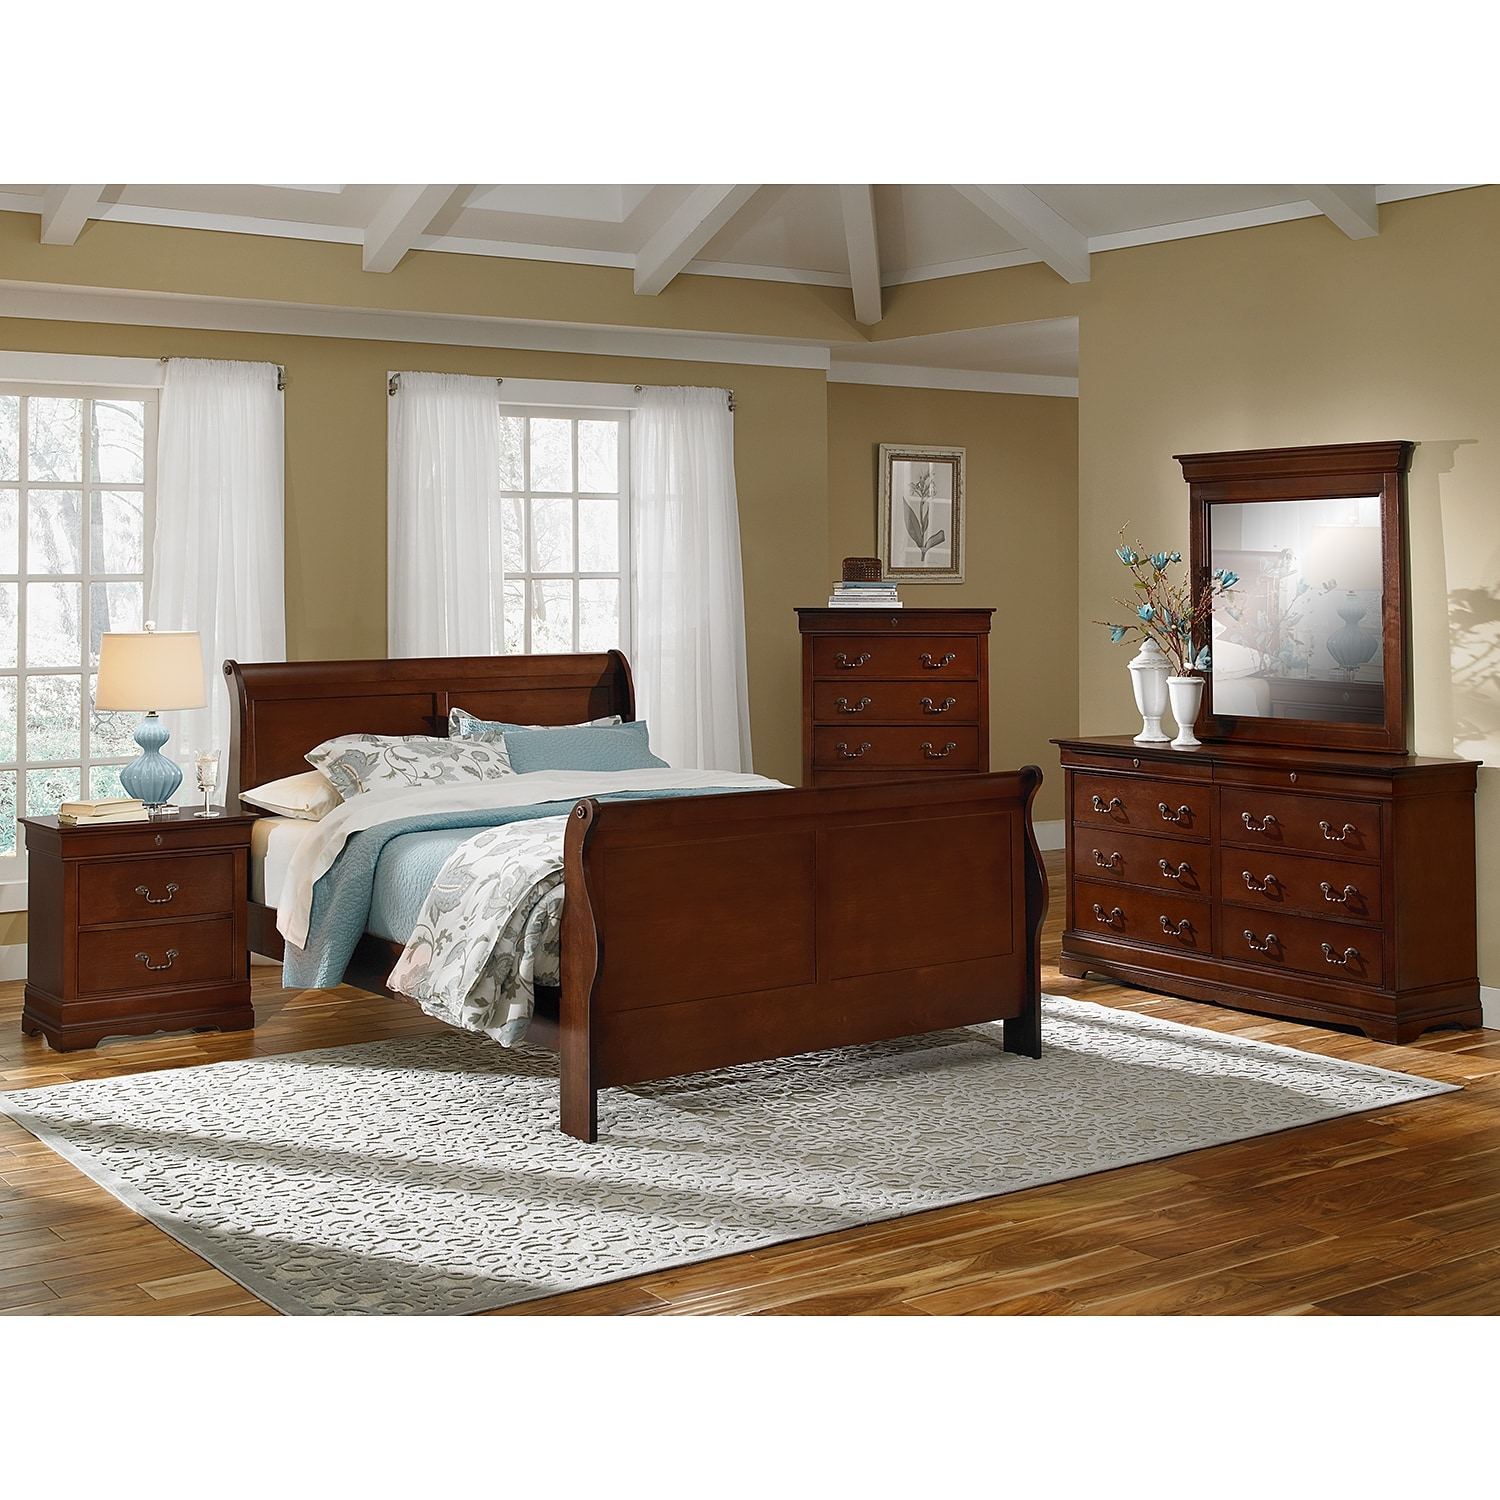 Was $1,099.96 Today $989.96 Neo Classic 7 Piece King Bedroom Set   Cherry